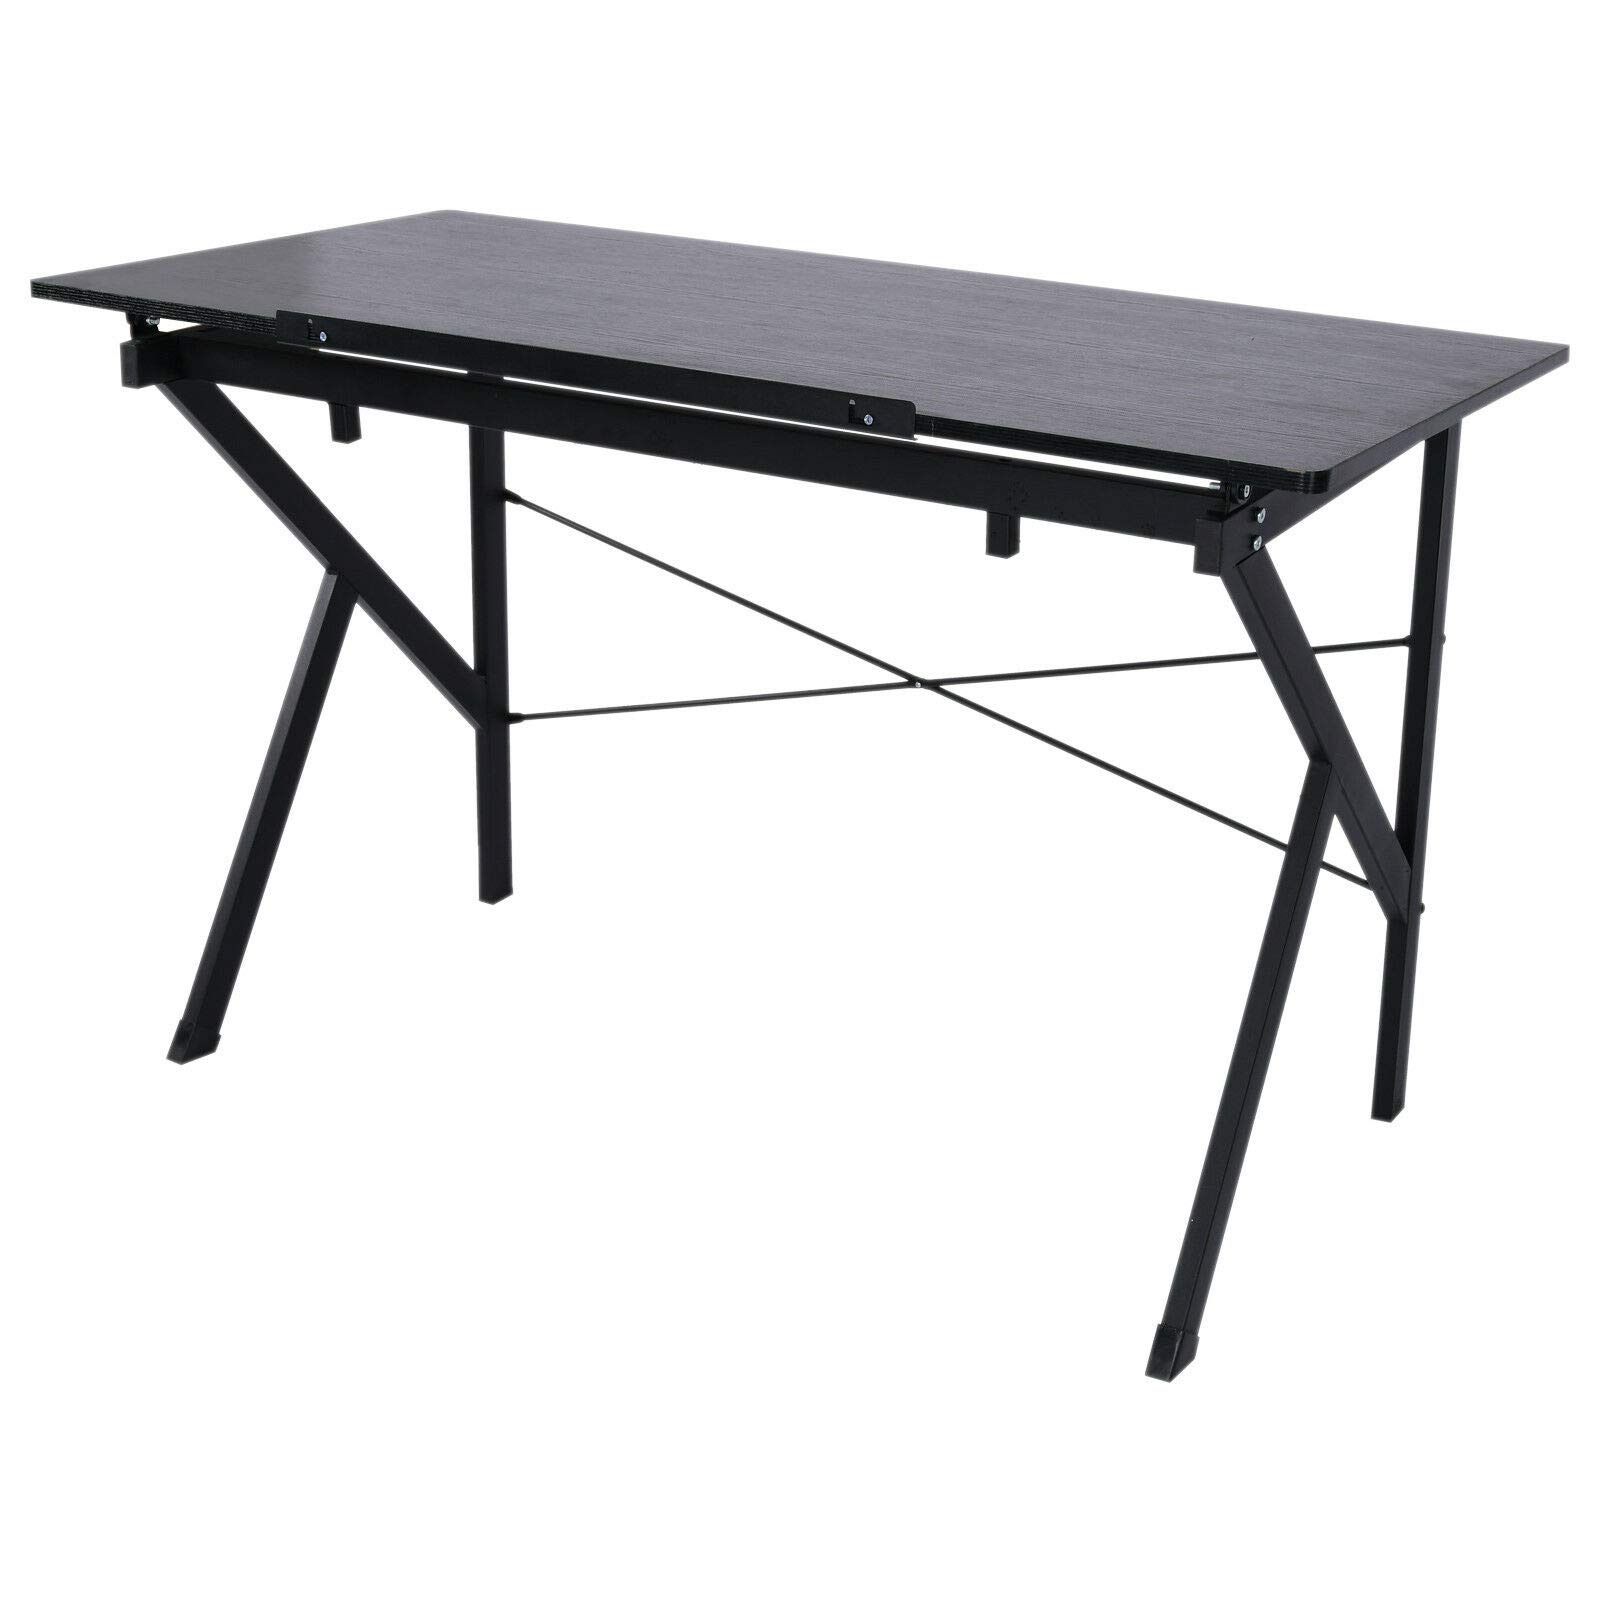 Black Art & Craft Drawing Table Drafting Desk 6 Level Adjustable Angle Spacious Tabletop MDF Board Steel Frame Construction Ideal for Drawing Painting Study Reading Writing Studio Architect Work by Auténtico